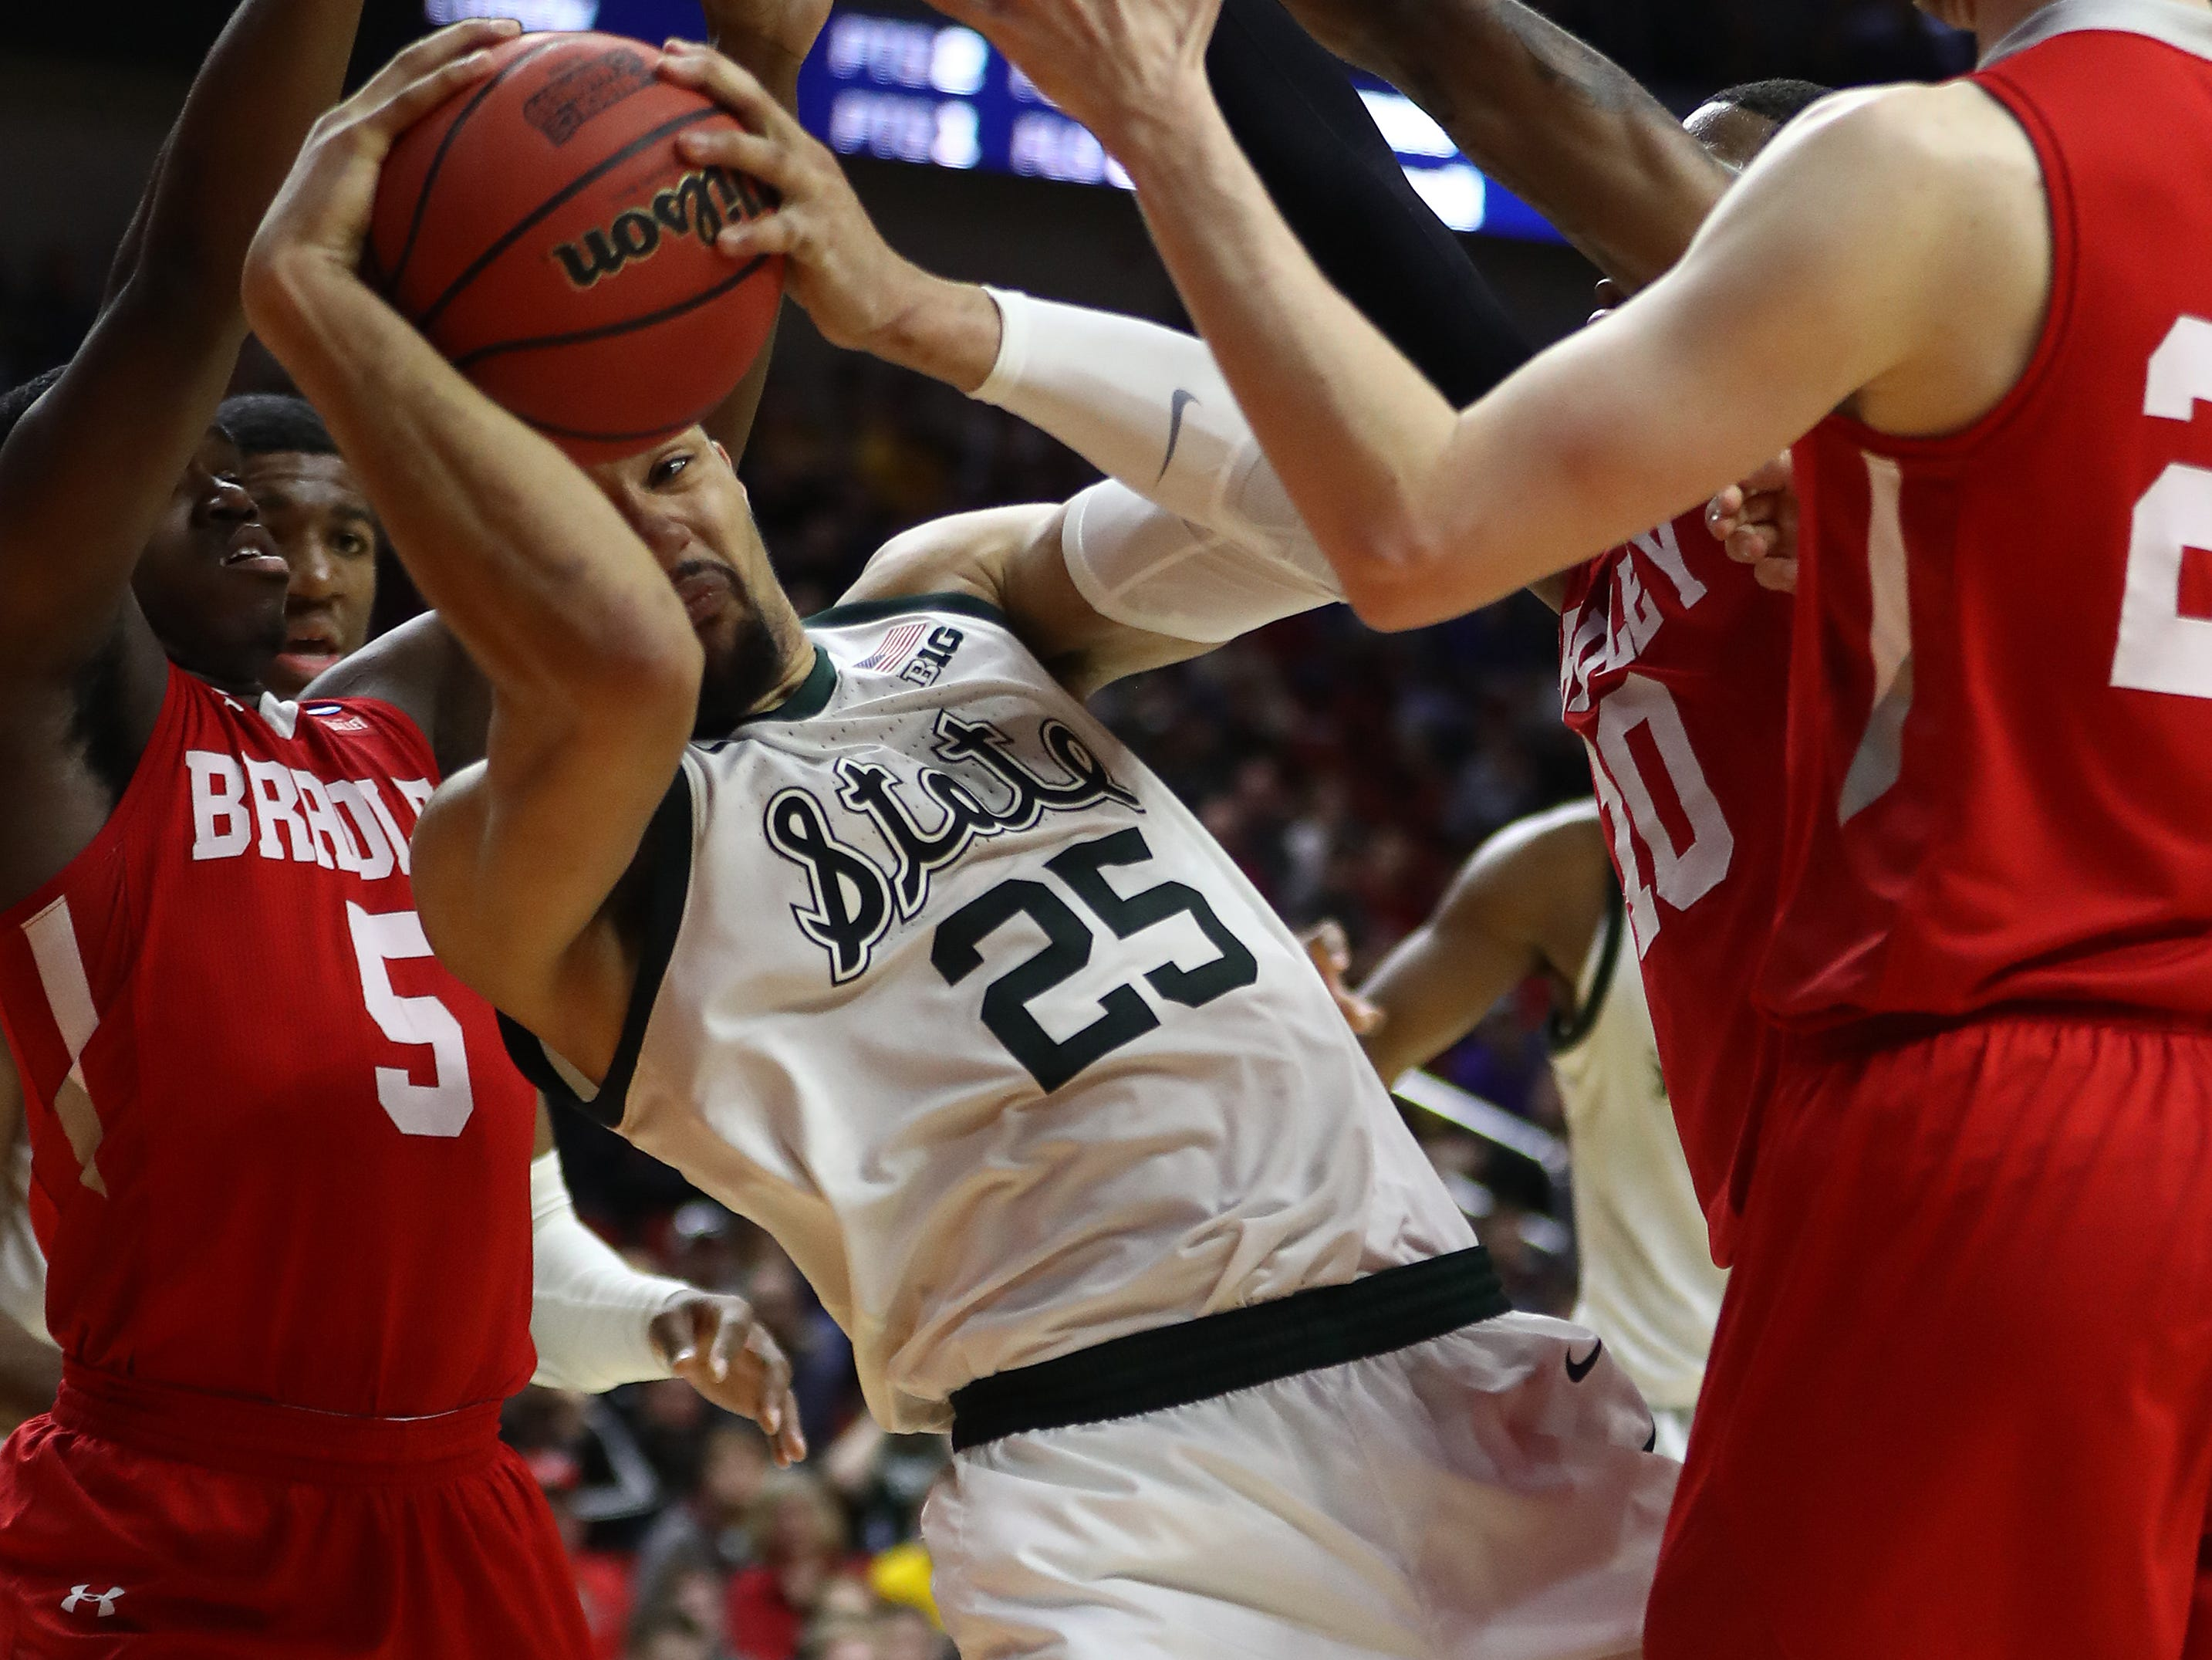 Kenny Goins #25 of the Michigan State Spartans controls the ball against the Bradley Braves during their game in the First Round of the NCAA Basketball Tournament at Wells Fargo Arena on March 21, 2019 in Des Moines, Iowa.